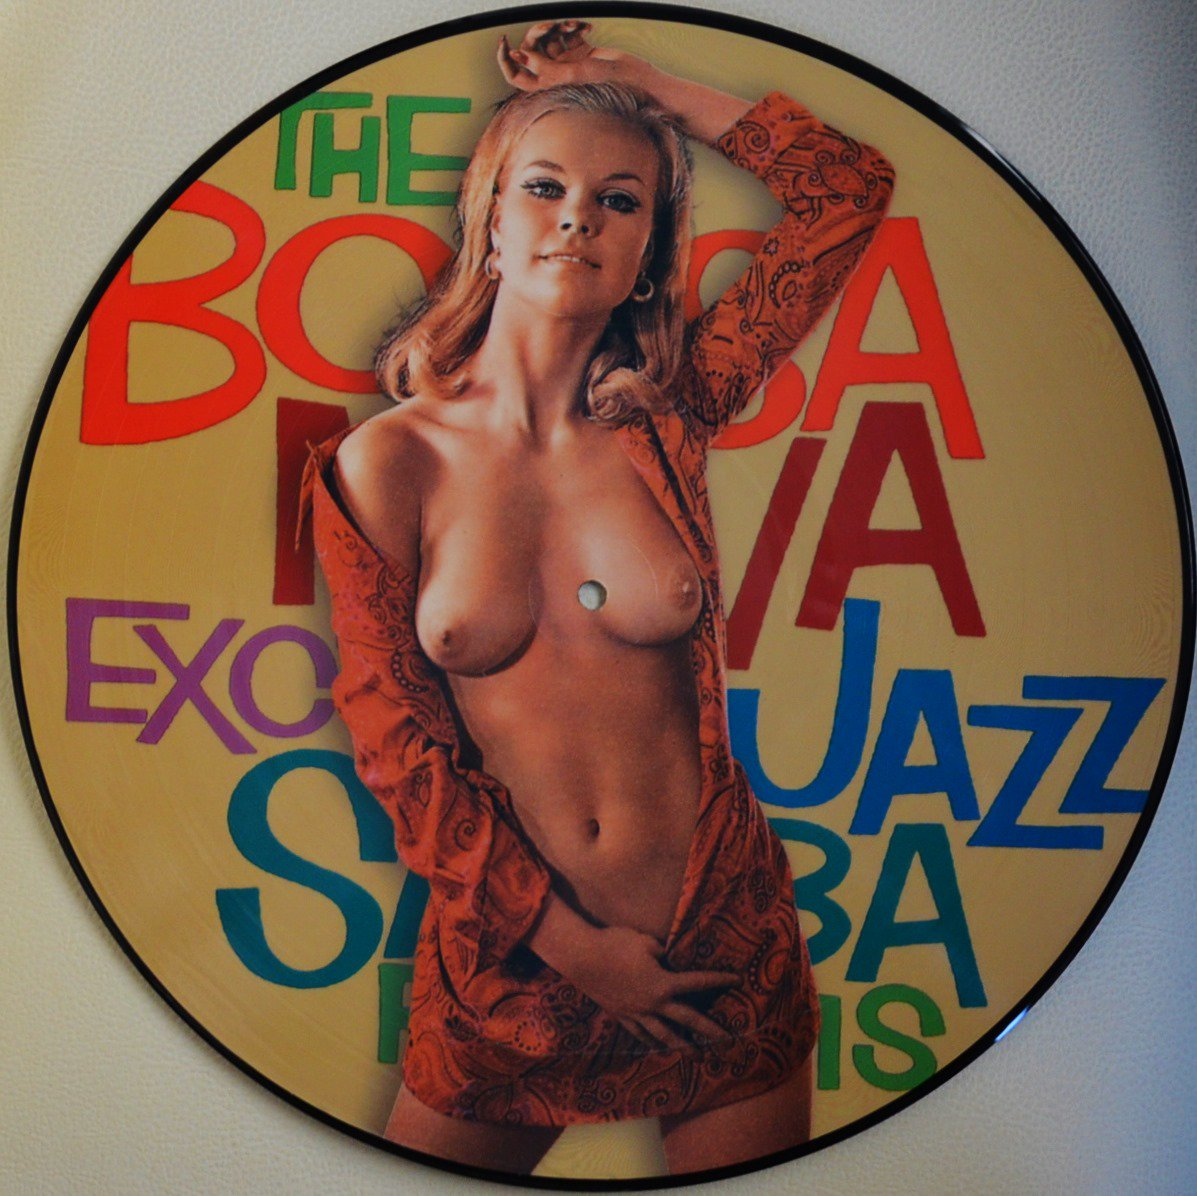 V.A. / THE BOSSA NOVA EXCITING JAZZ SAMBA RHYTHMS - VOL. 6 (LP)